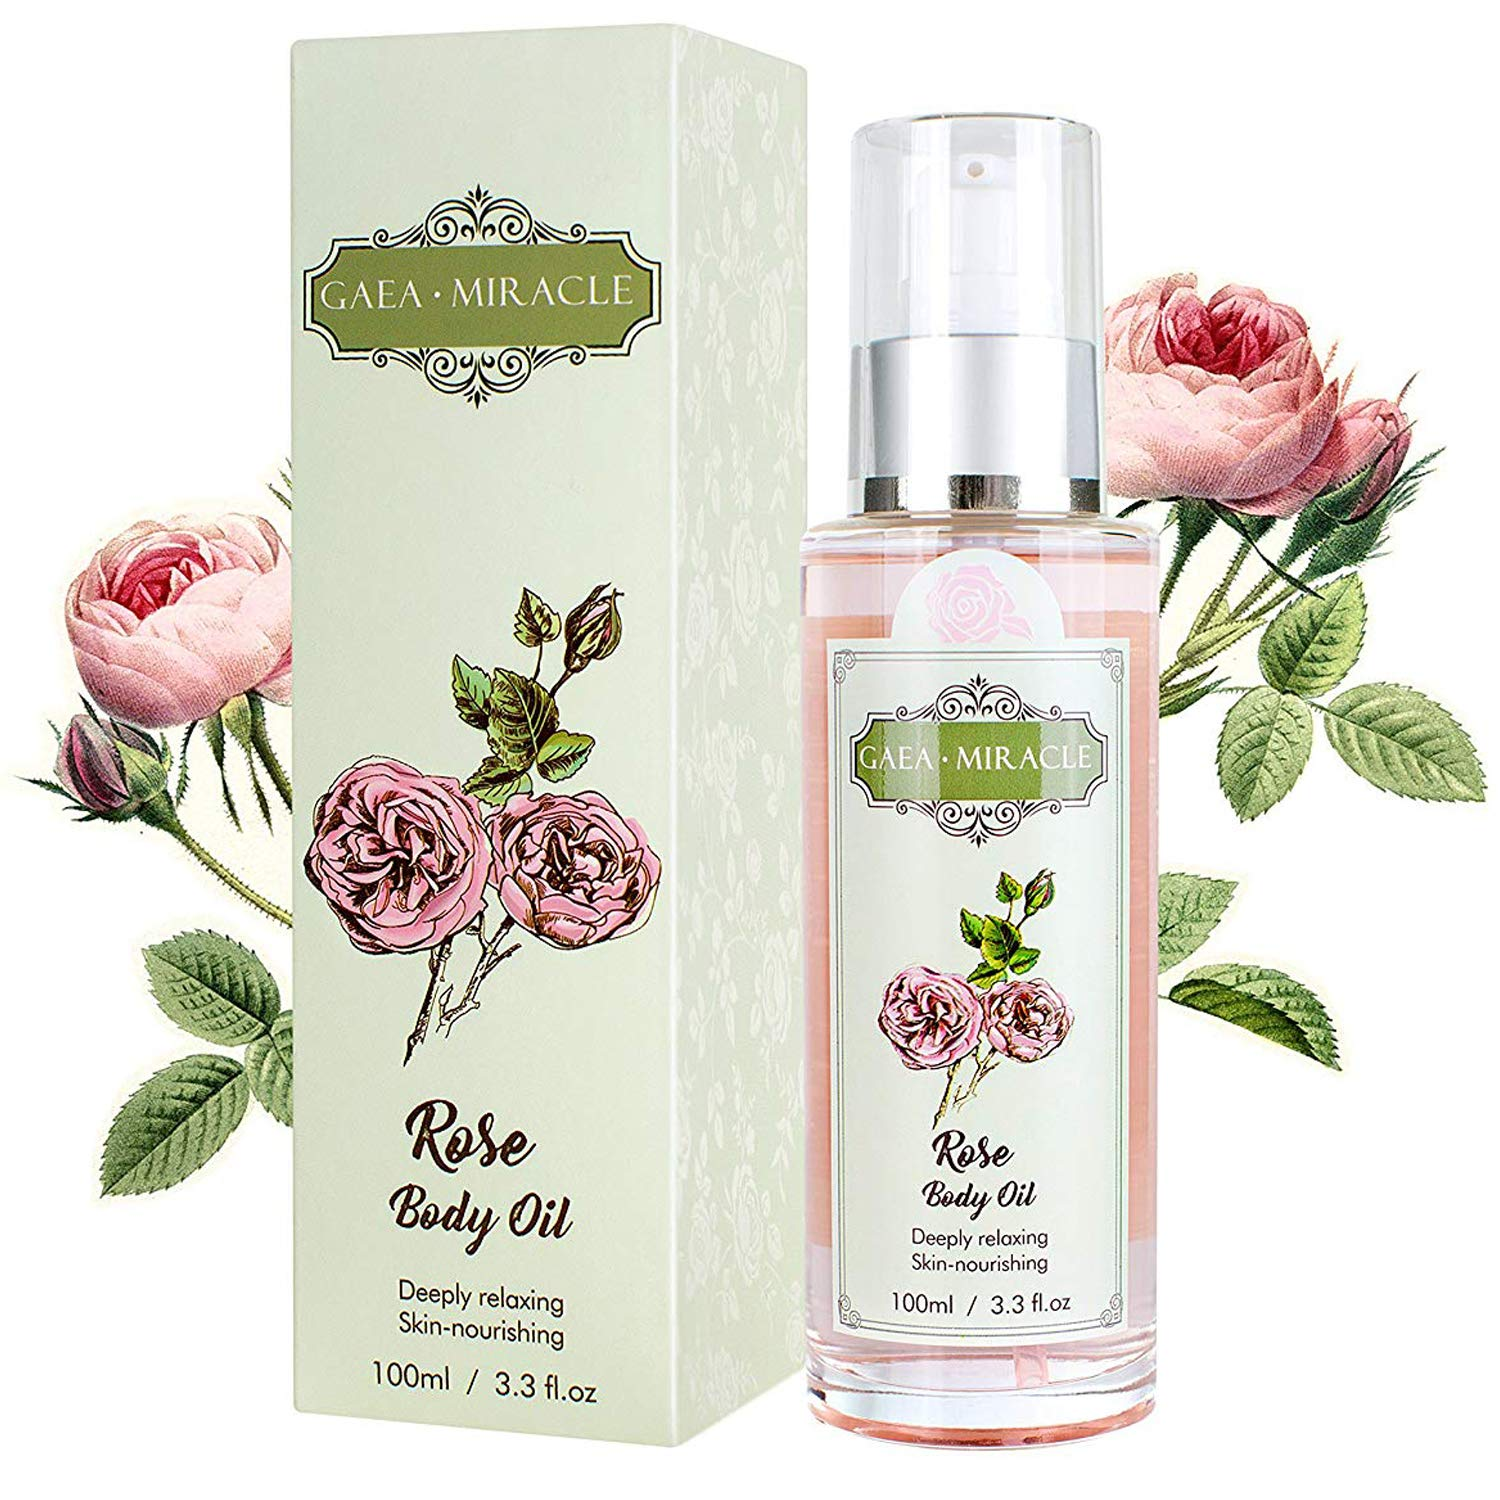 GAEA MIRACLE - Body Oil Body Lotion Moisturizing Oil, Organic Blend of Rose Olive Oil with Vitamin E - Daily Moisturizing for Face and Full Body - for Sensitive/Dry Skin 3.3 Fl.oz by GAEA MIRACLE